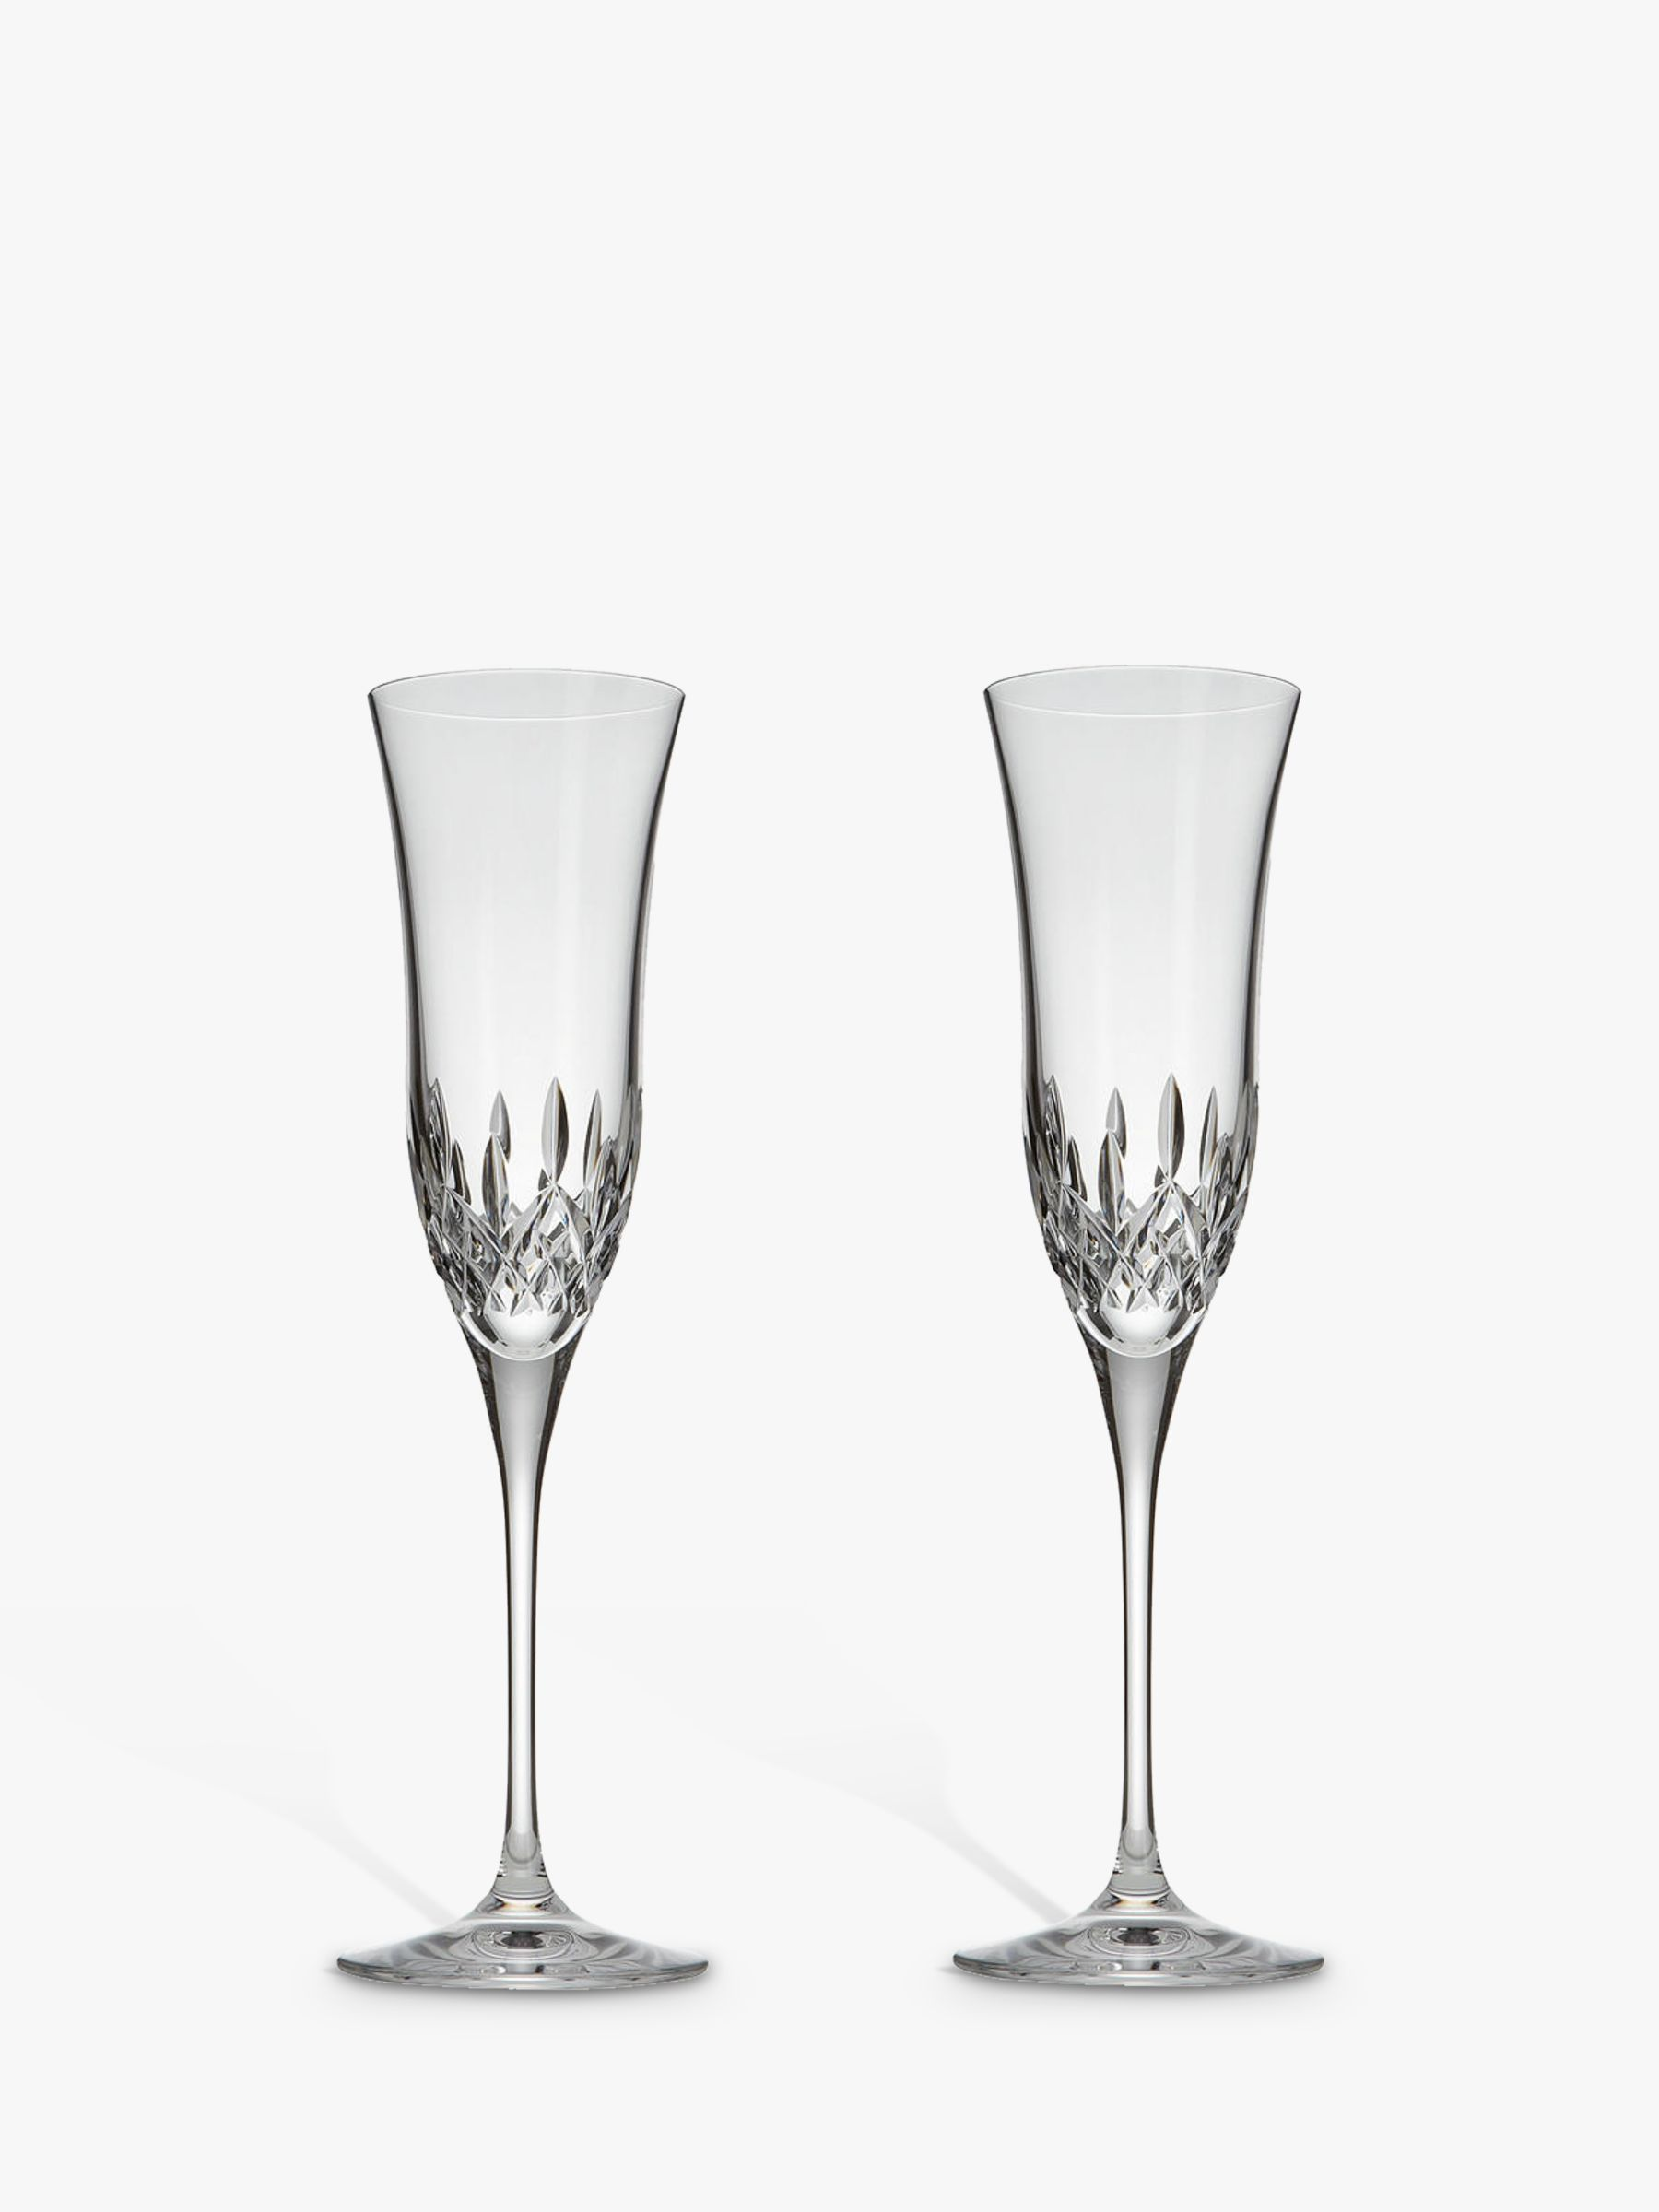 Waterford Waterford Crystal Lismore Essence Cut Lead Crystal Champagne Flutes, Set of 2, 150ml